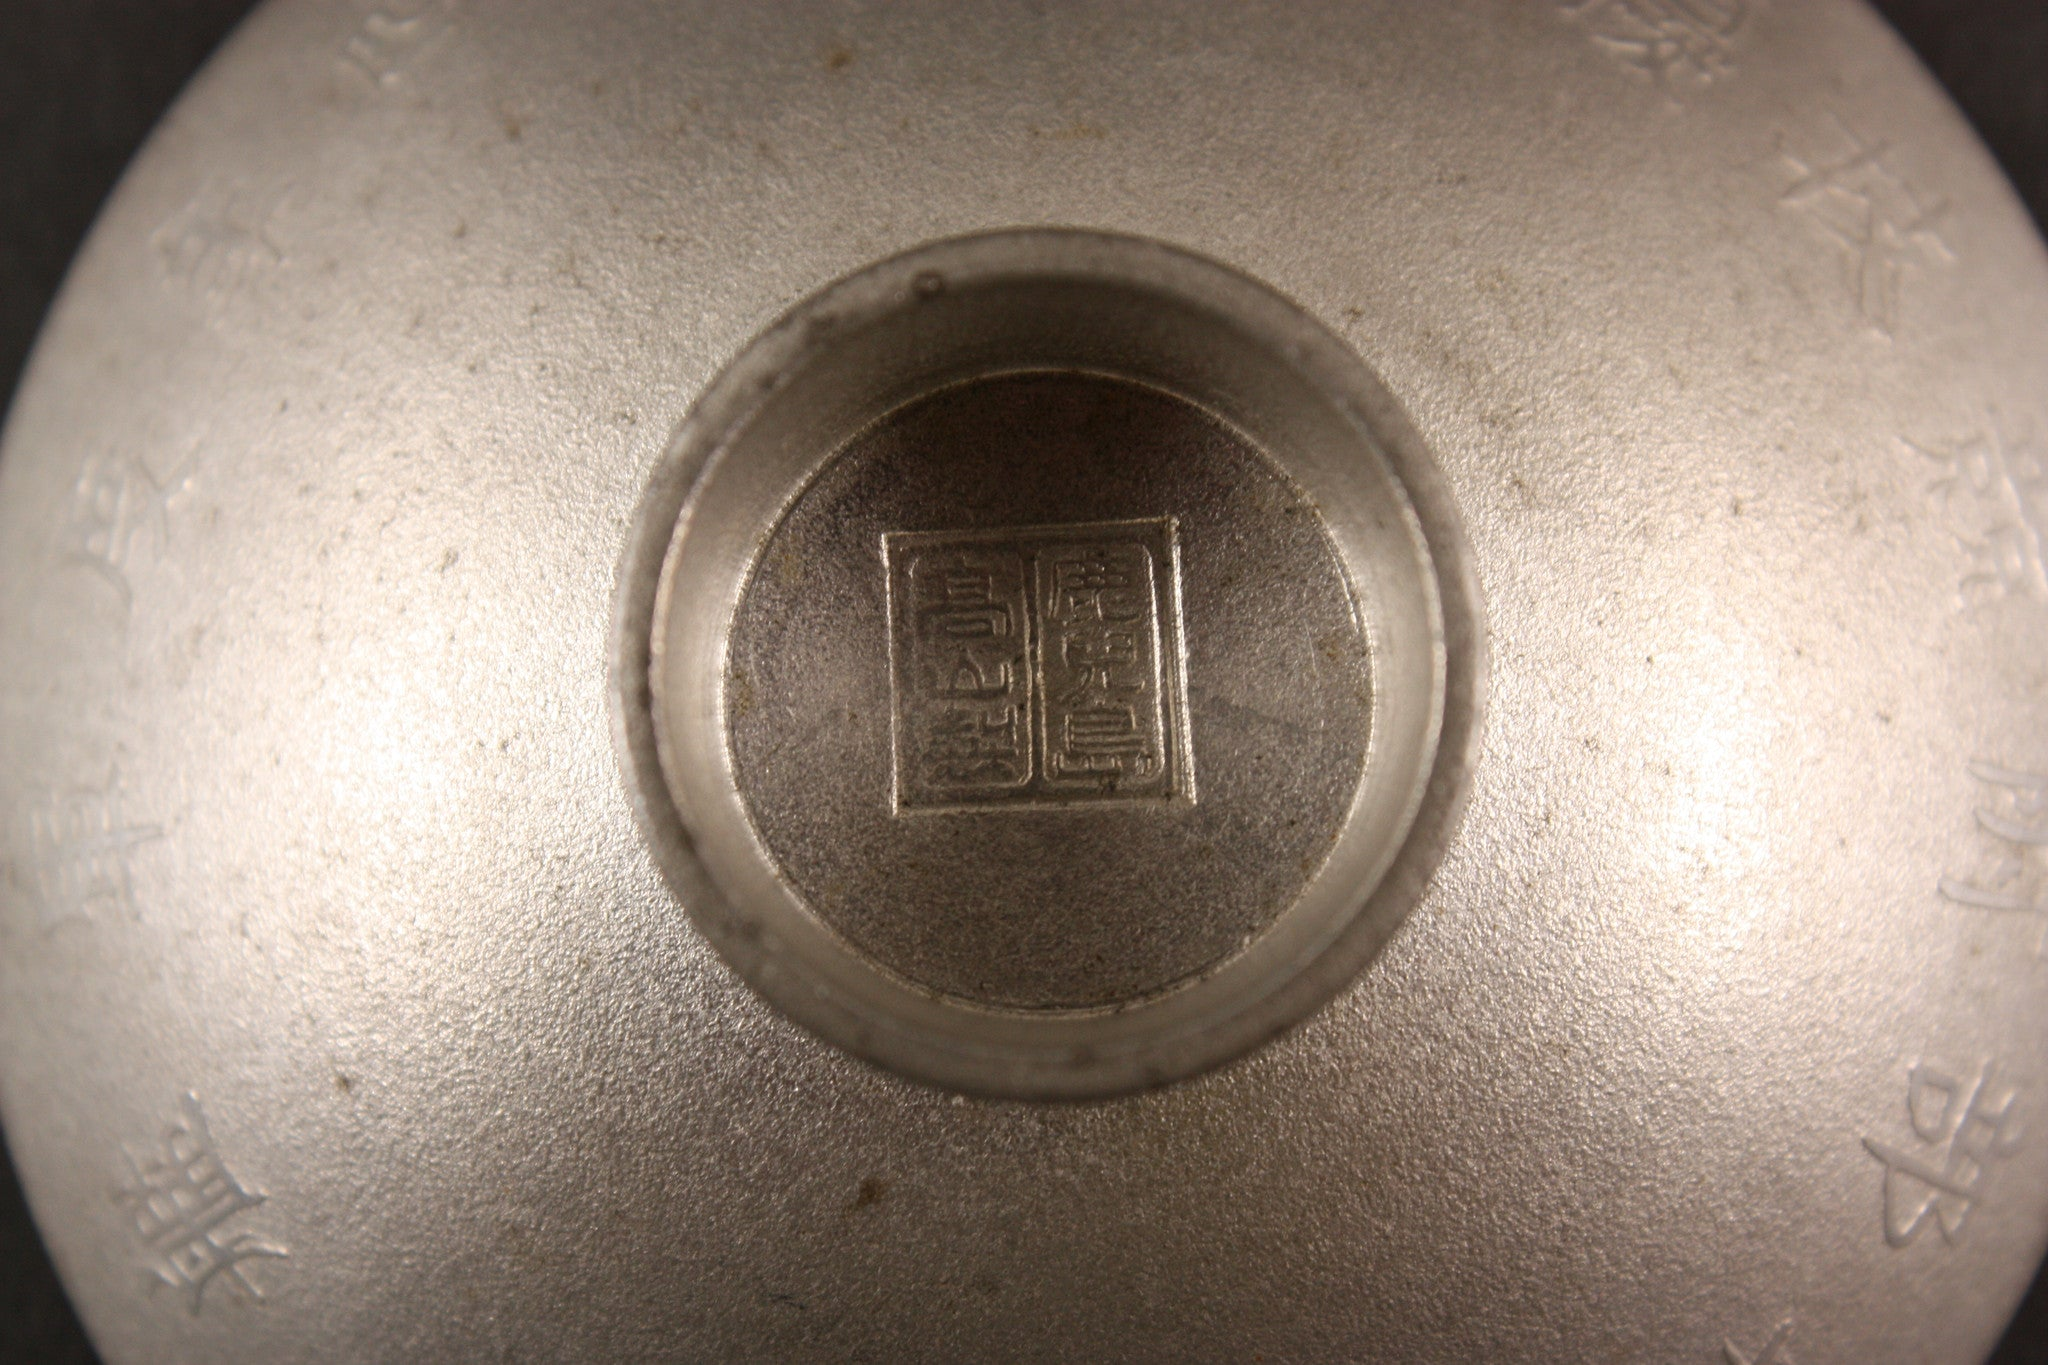 Very Rare Japanese Battleship Nagato 1929 Officer Gunnery Competition Award Pewter Navy Sake Cup